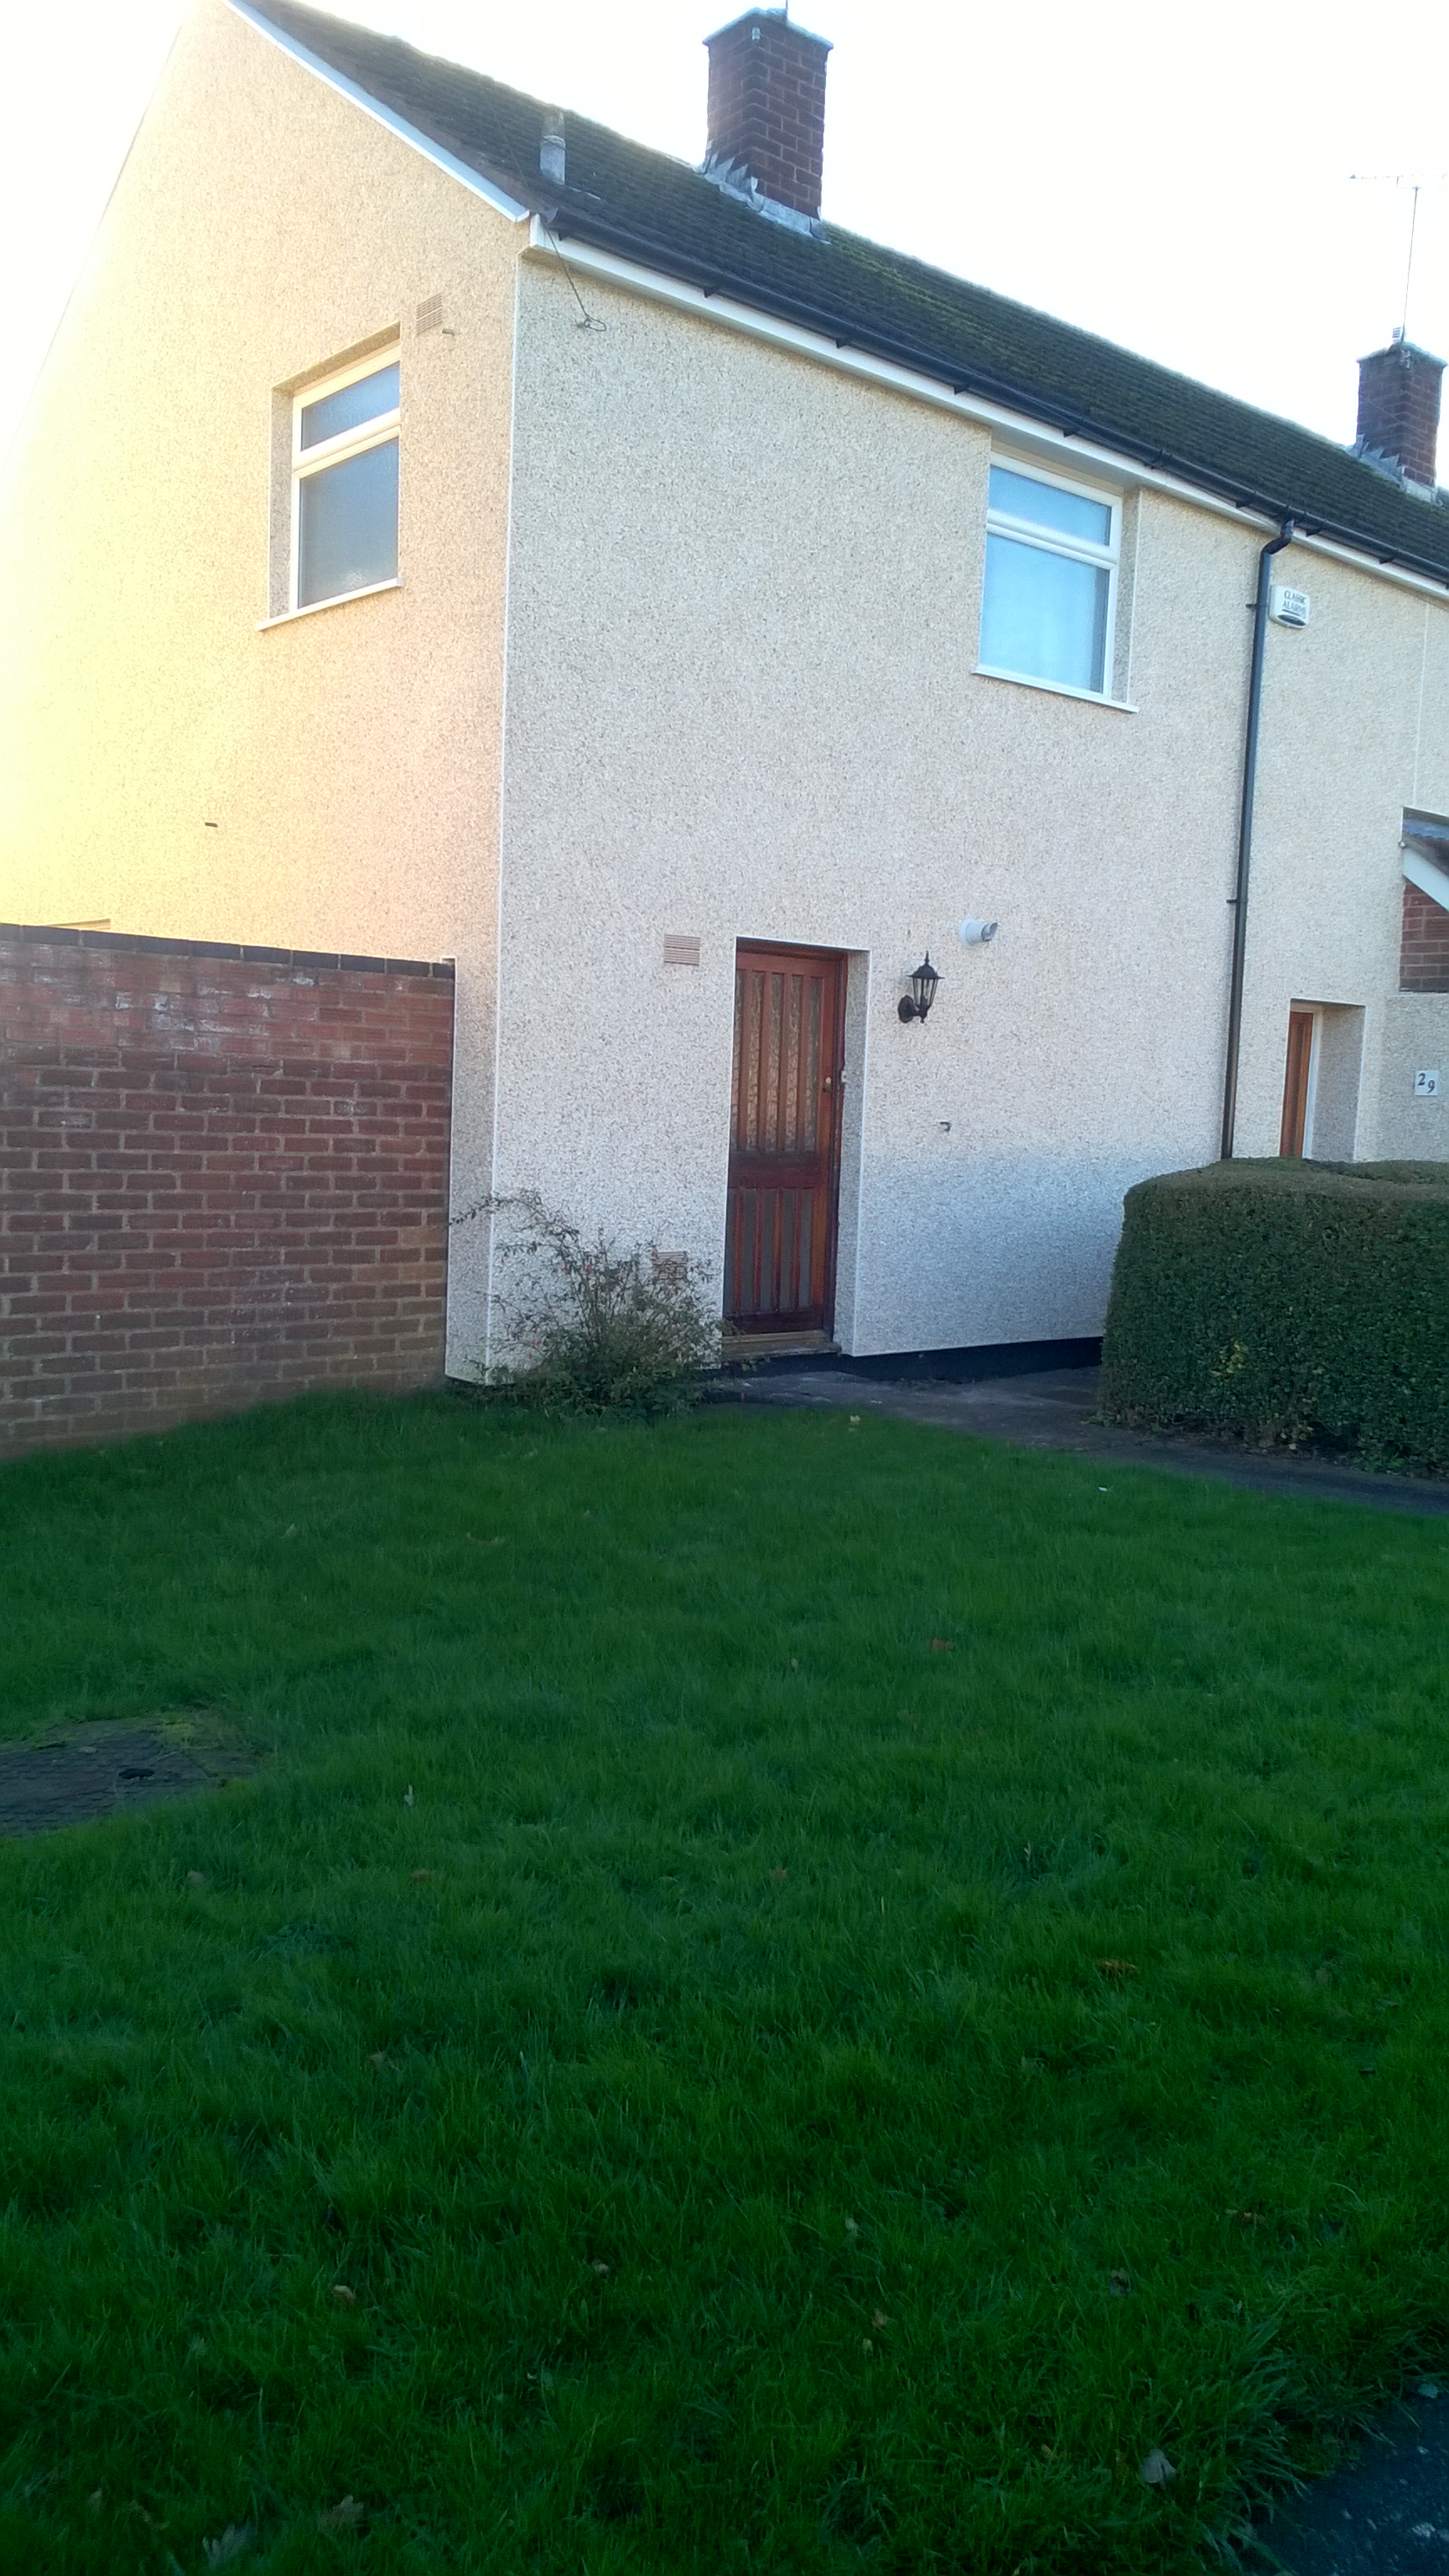 2 Bedroom House To Rent In Coventry Private Landlord 28 Images 2 Bedroom House To Rent In